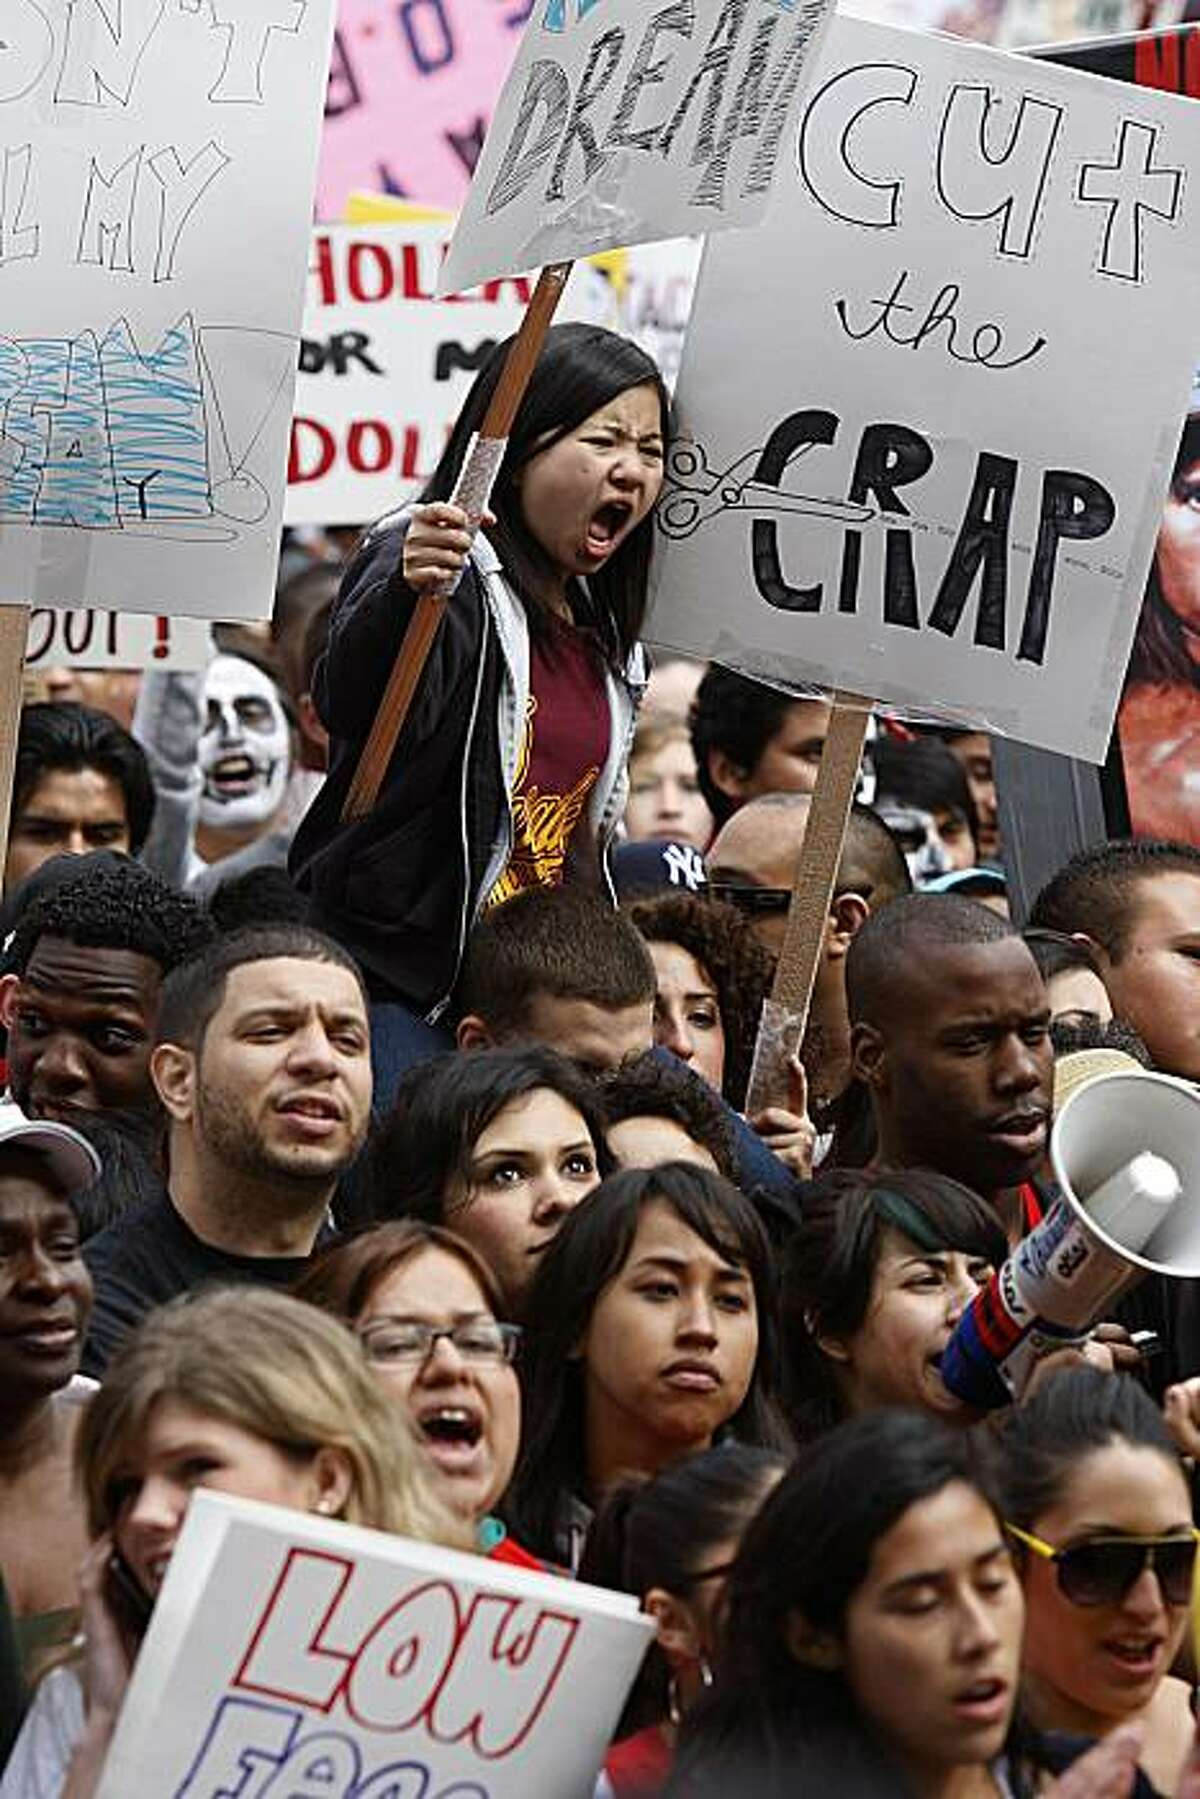 California students from community colleges statewide rallied against school budget cuts at the state capitol in Sacramento, Calif., on Monday, March 22, 2010.